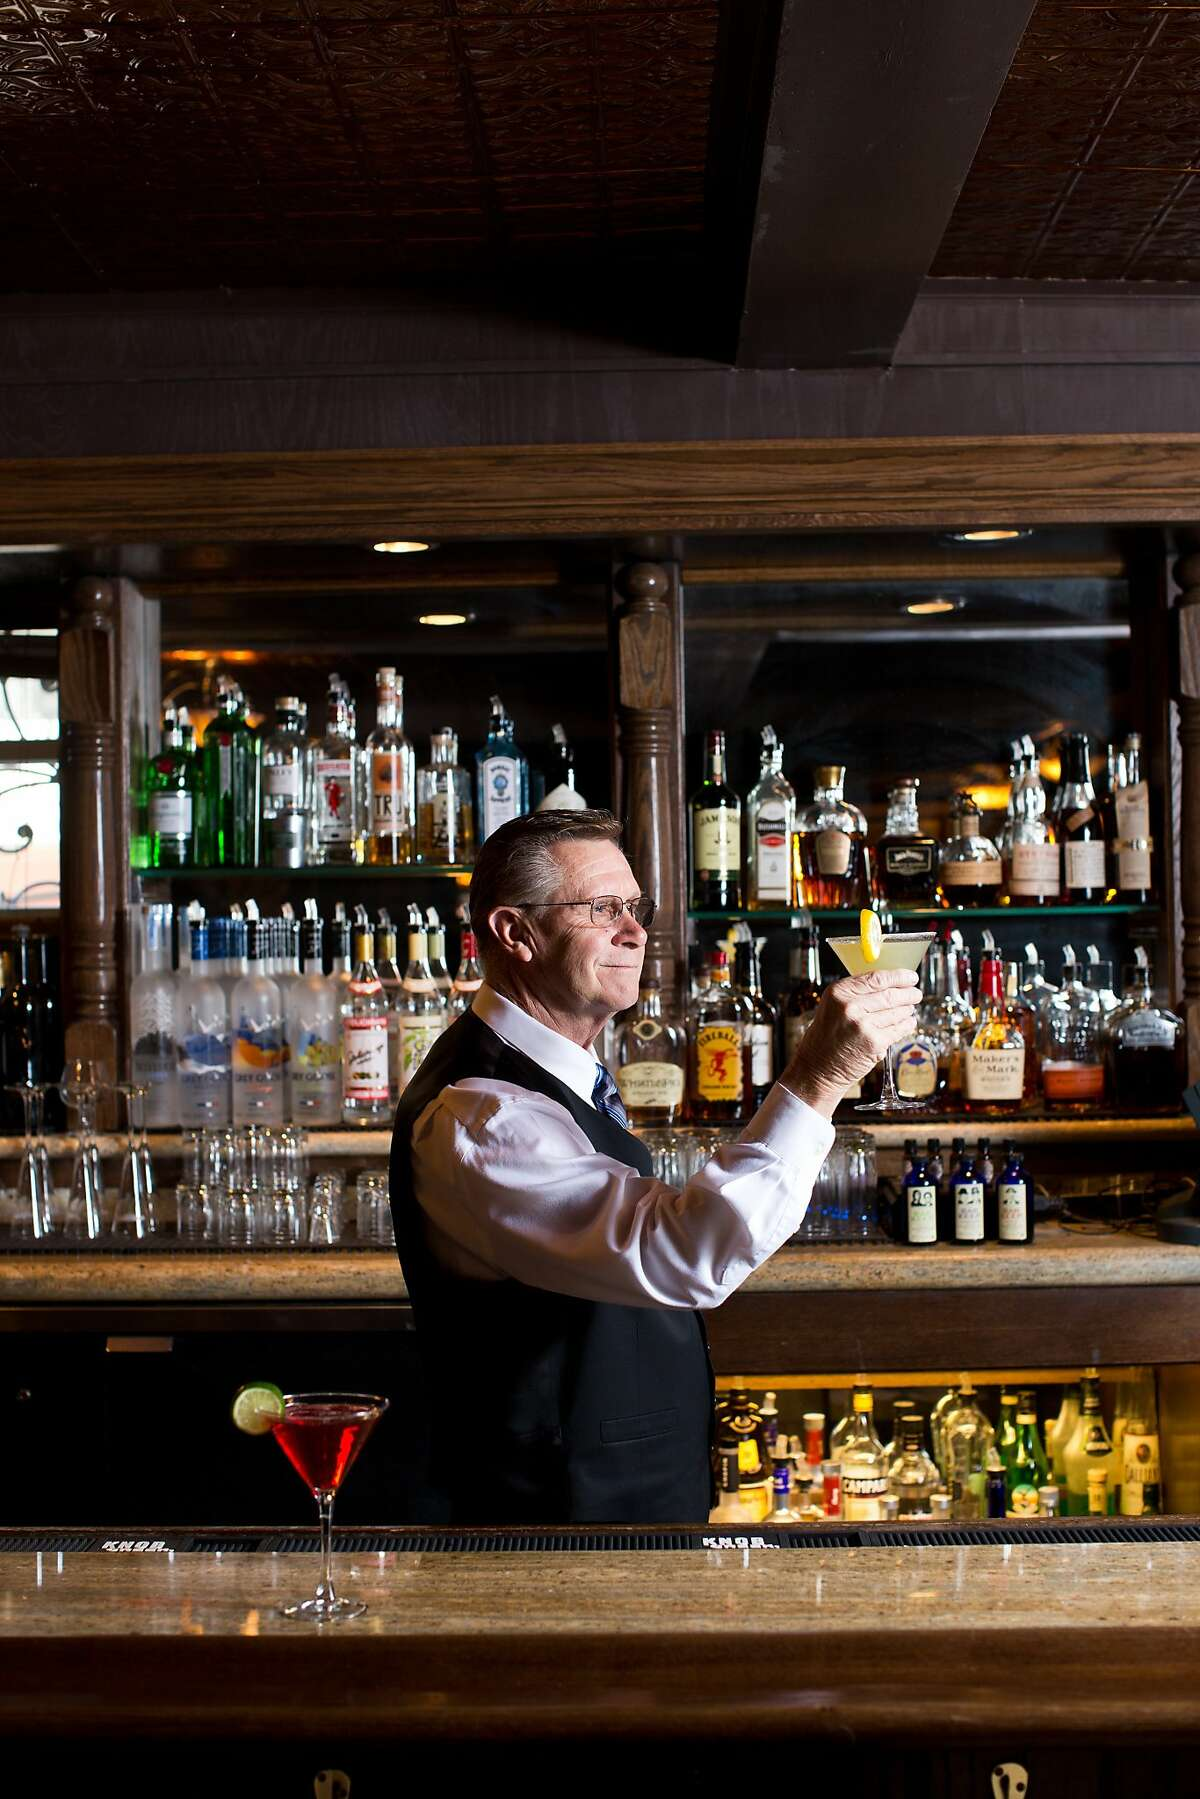 Bartender Dan Bryan mans the bar downstairs at the recently renovated National Hotel in Jackson, Calif., Thursday, January 30, 2014.